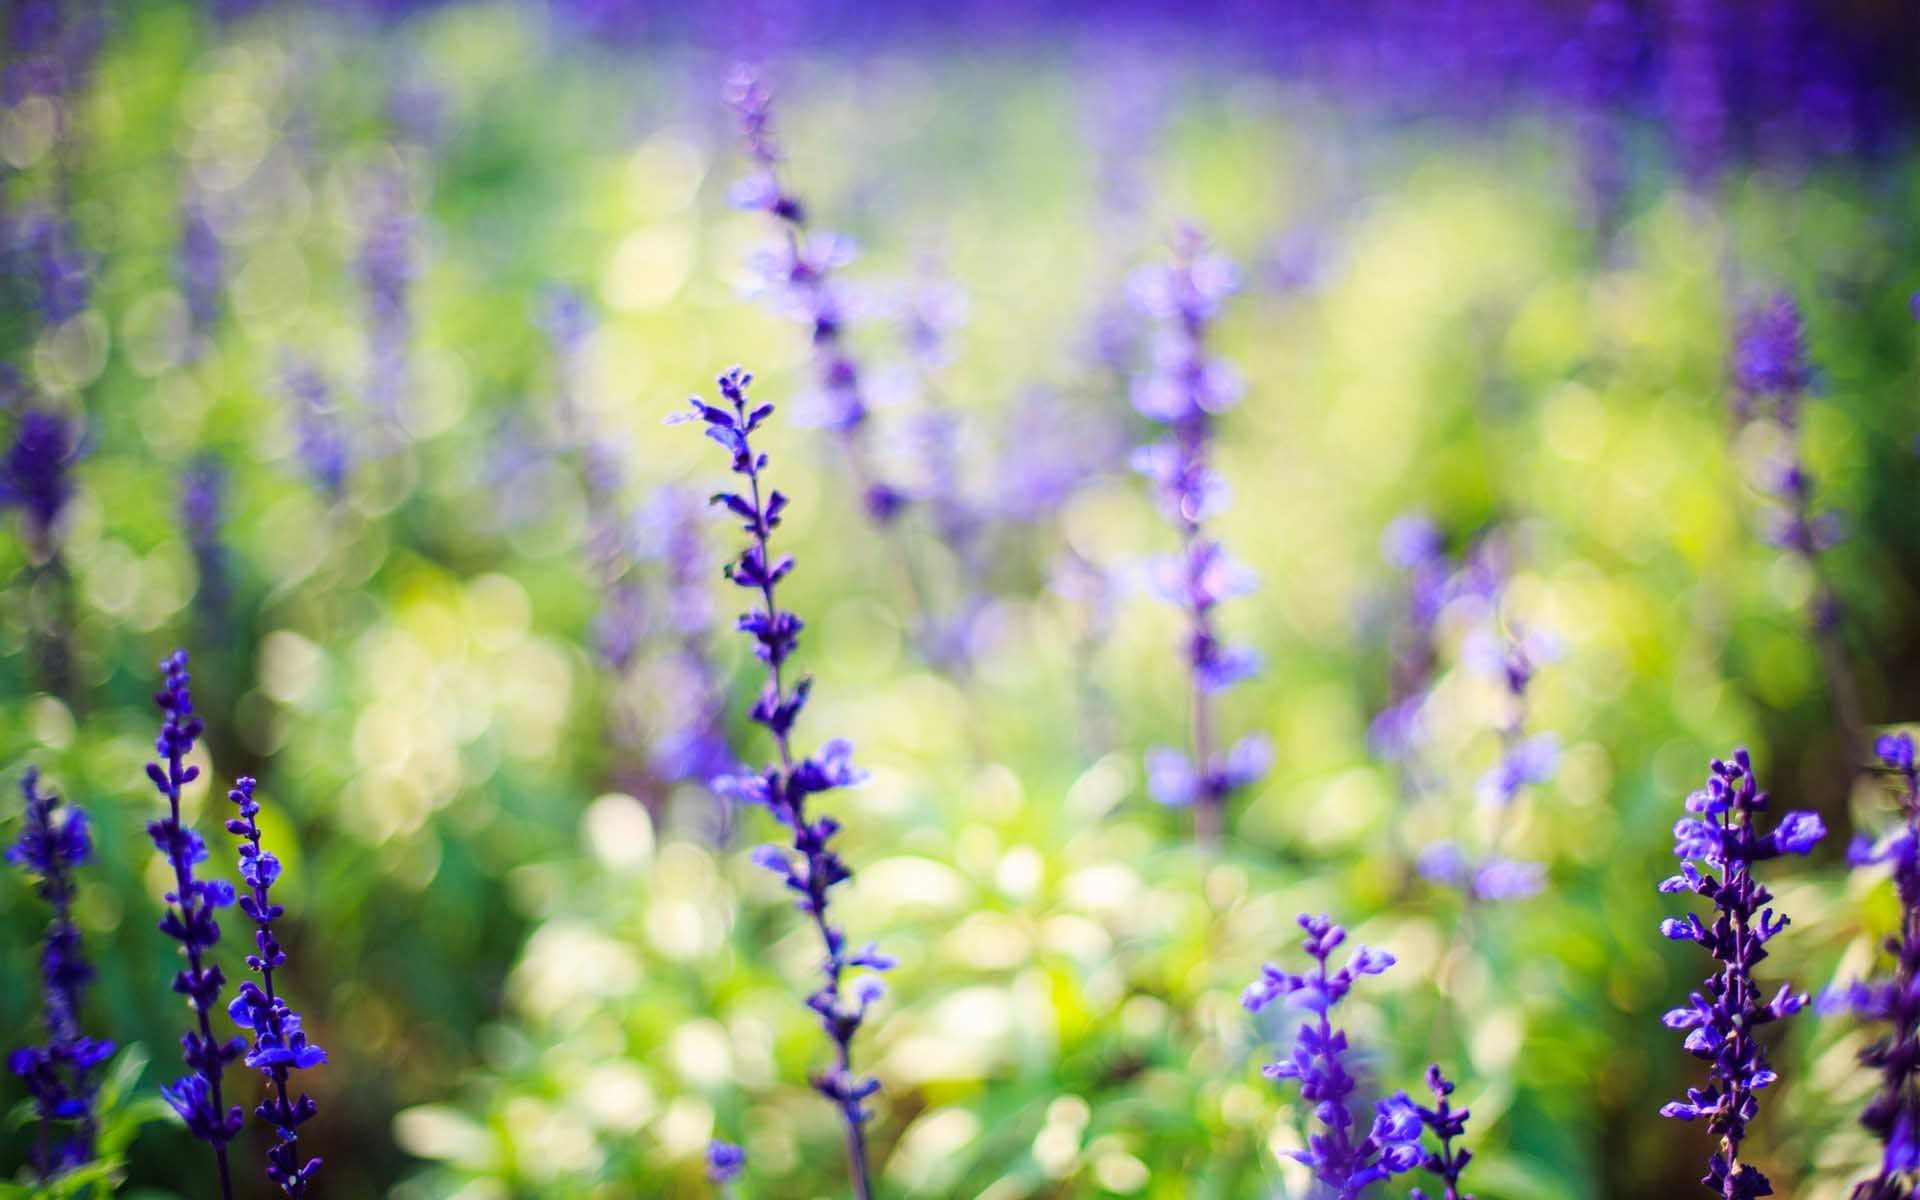 Nature Flowers Purple Lavender Pleasant Wallpaper 1920x1200 Cool Pc Wallpapers Flowers Flower Field Lavender